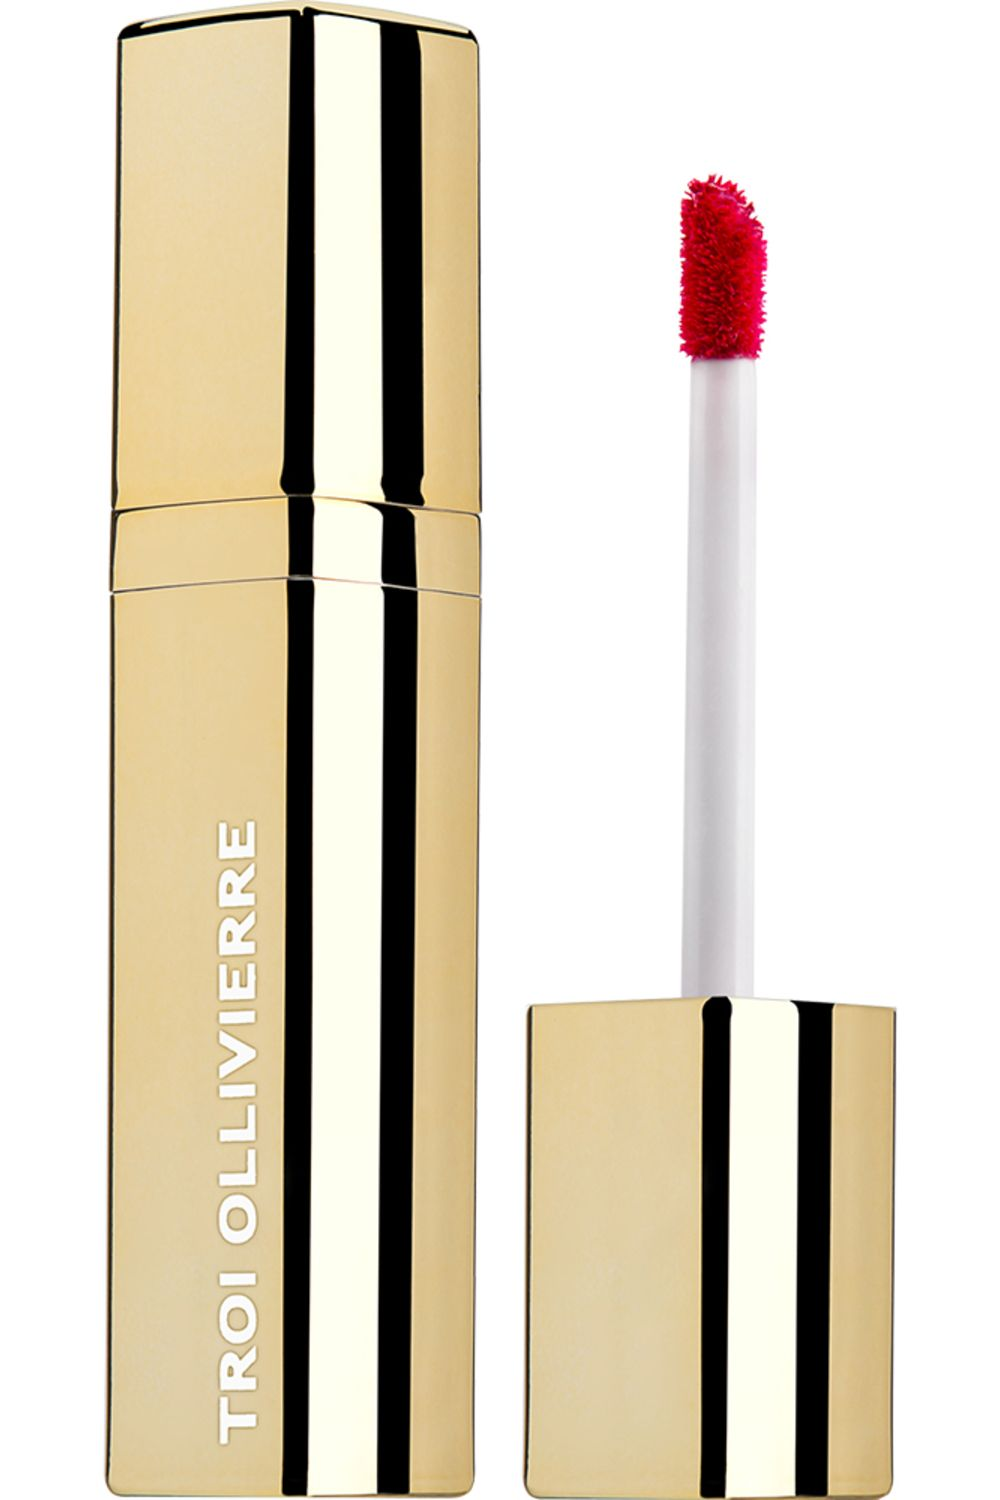 Blissim : Troi Ollivierre Beauty - Encres à lèvres Stain & Glow - Stain & Glow Lip Stain Tim